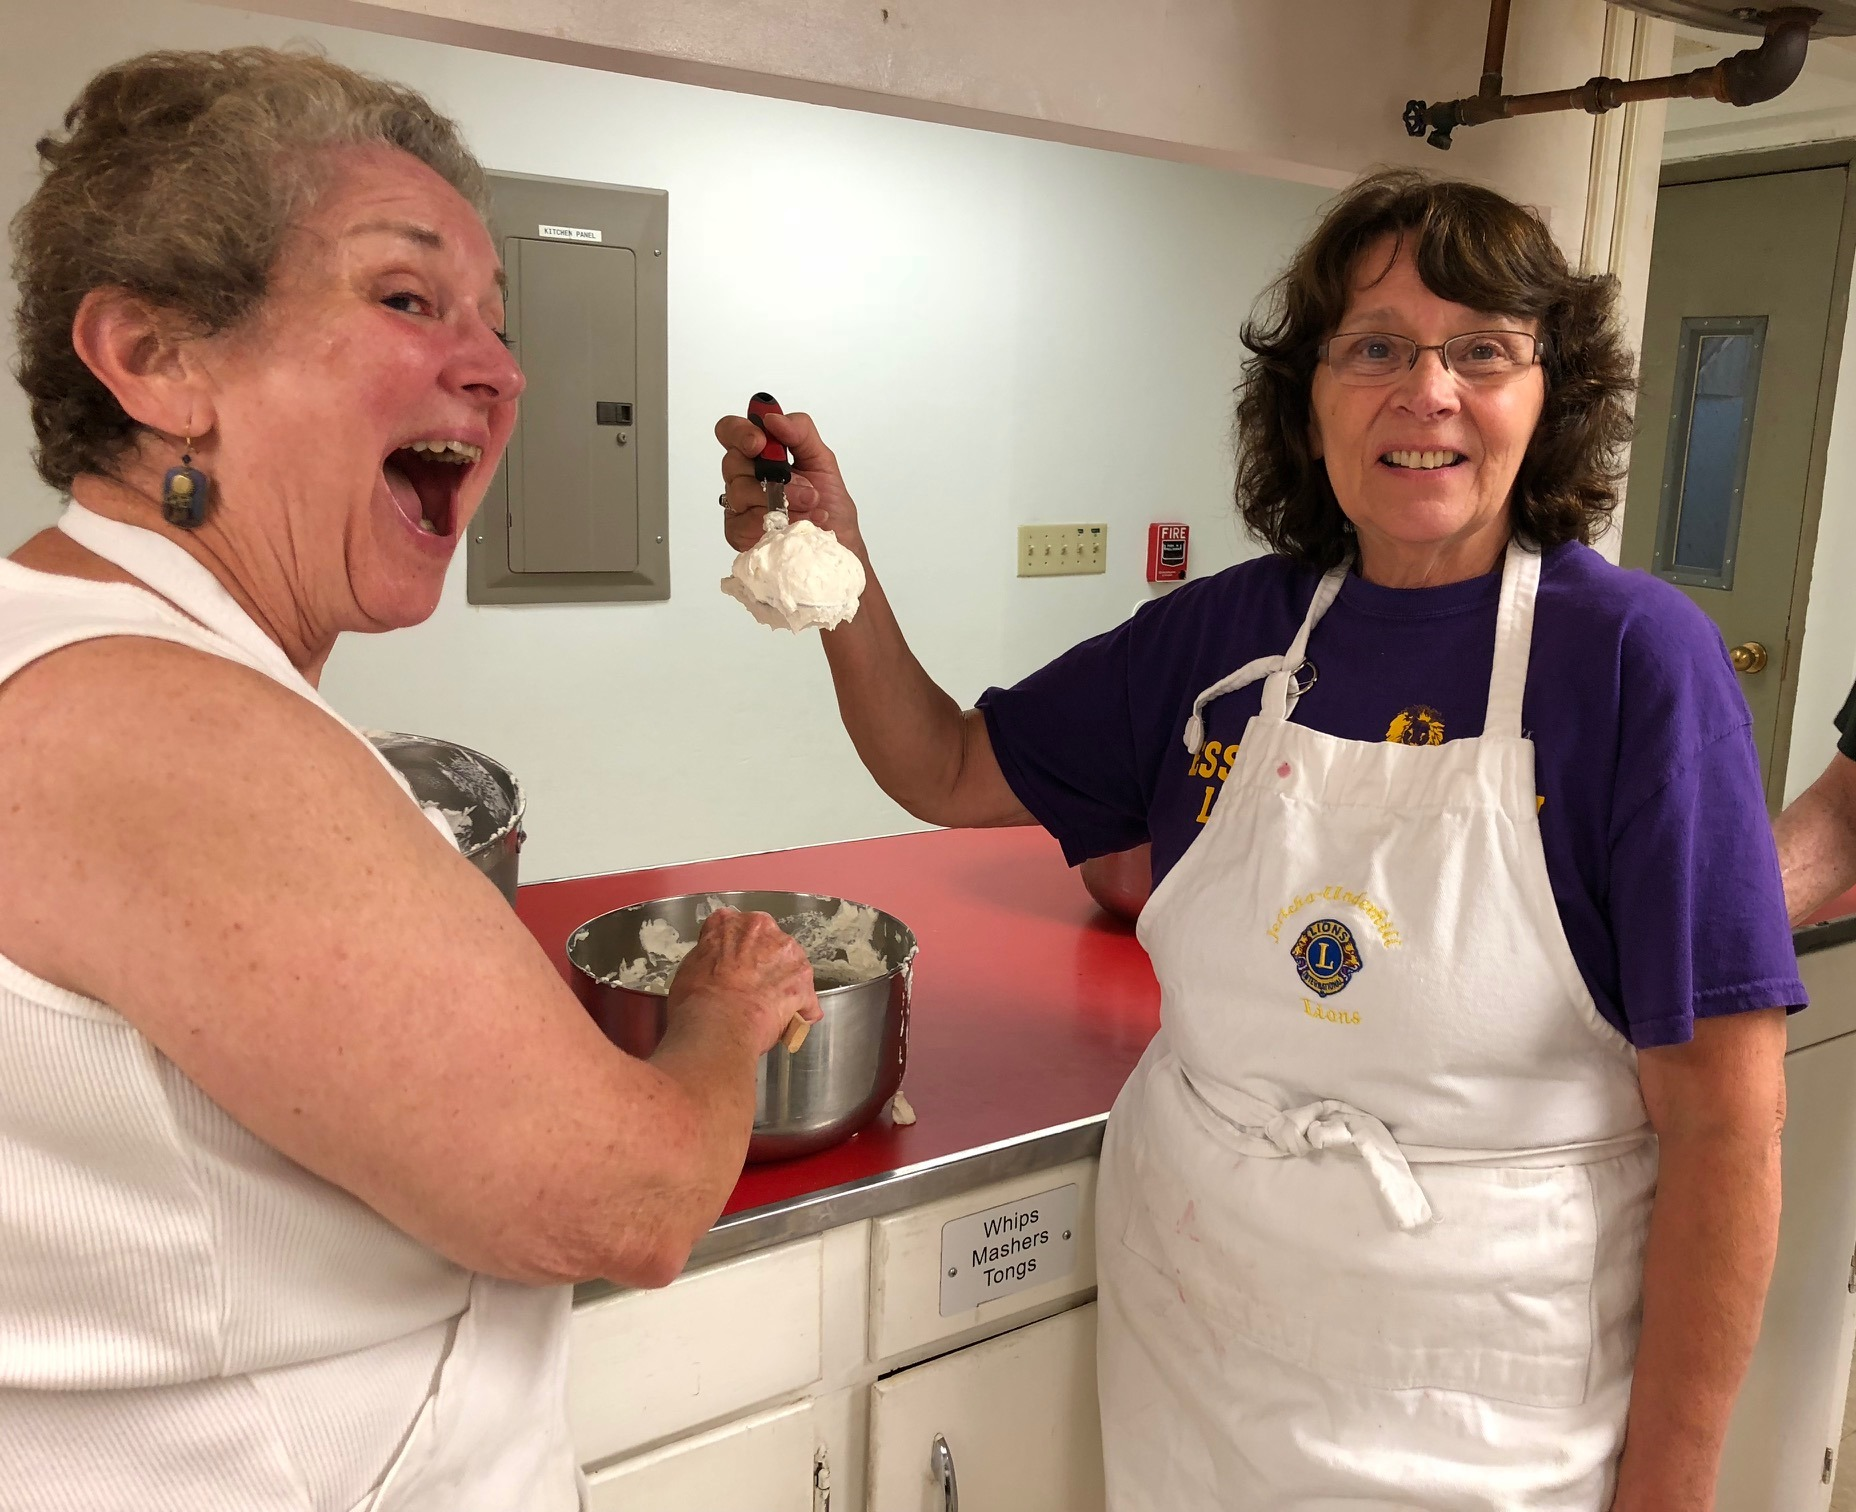 Marge Alden and Betsy MaGee prepare for taste test